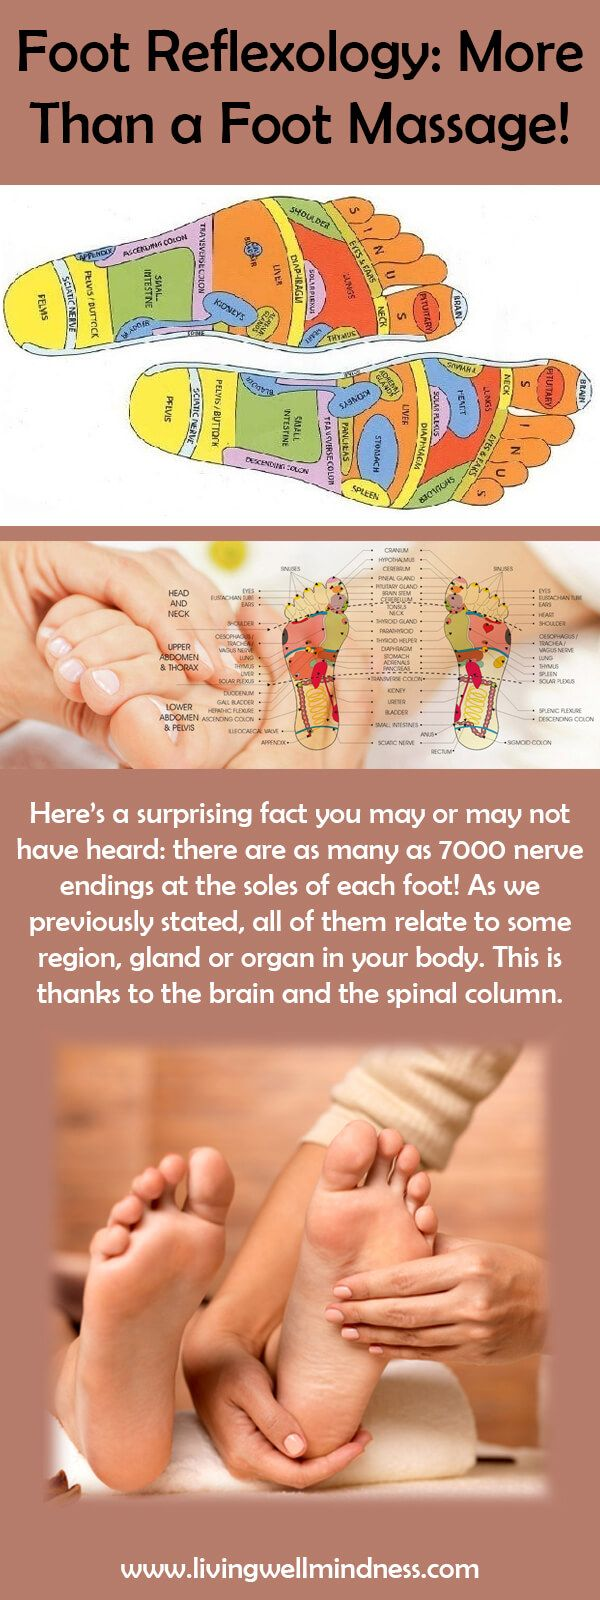 316 best reflexology images on pinterest massage acupuncture foot reflexology more than a foot massage living wellmindness pooptronica Image collections